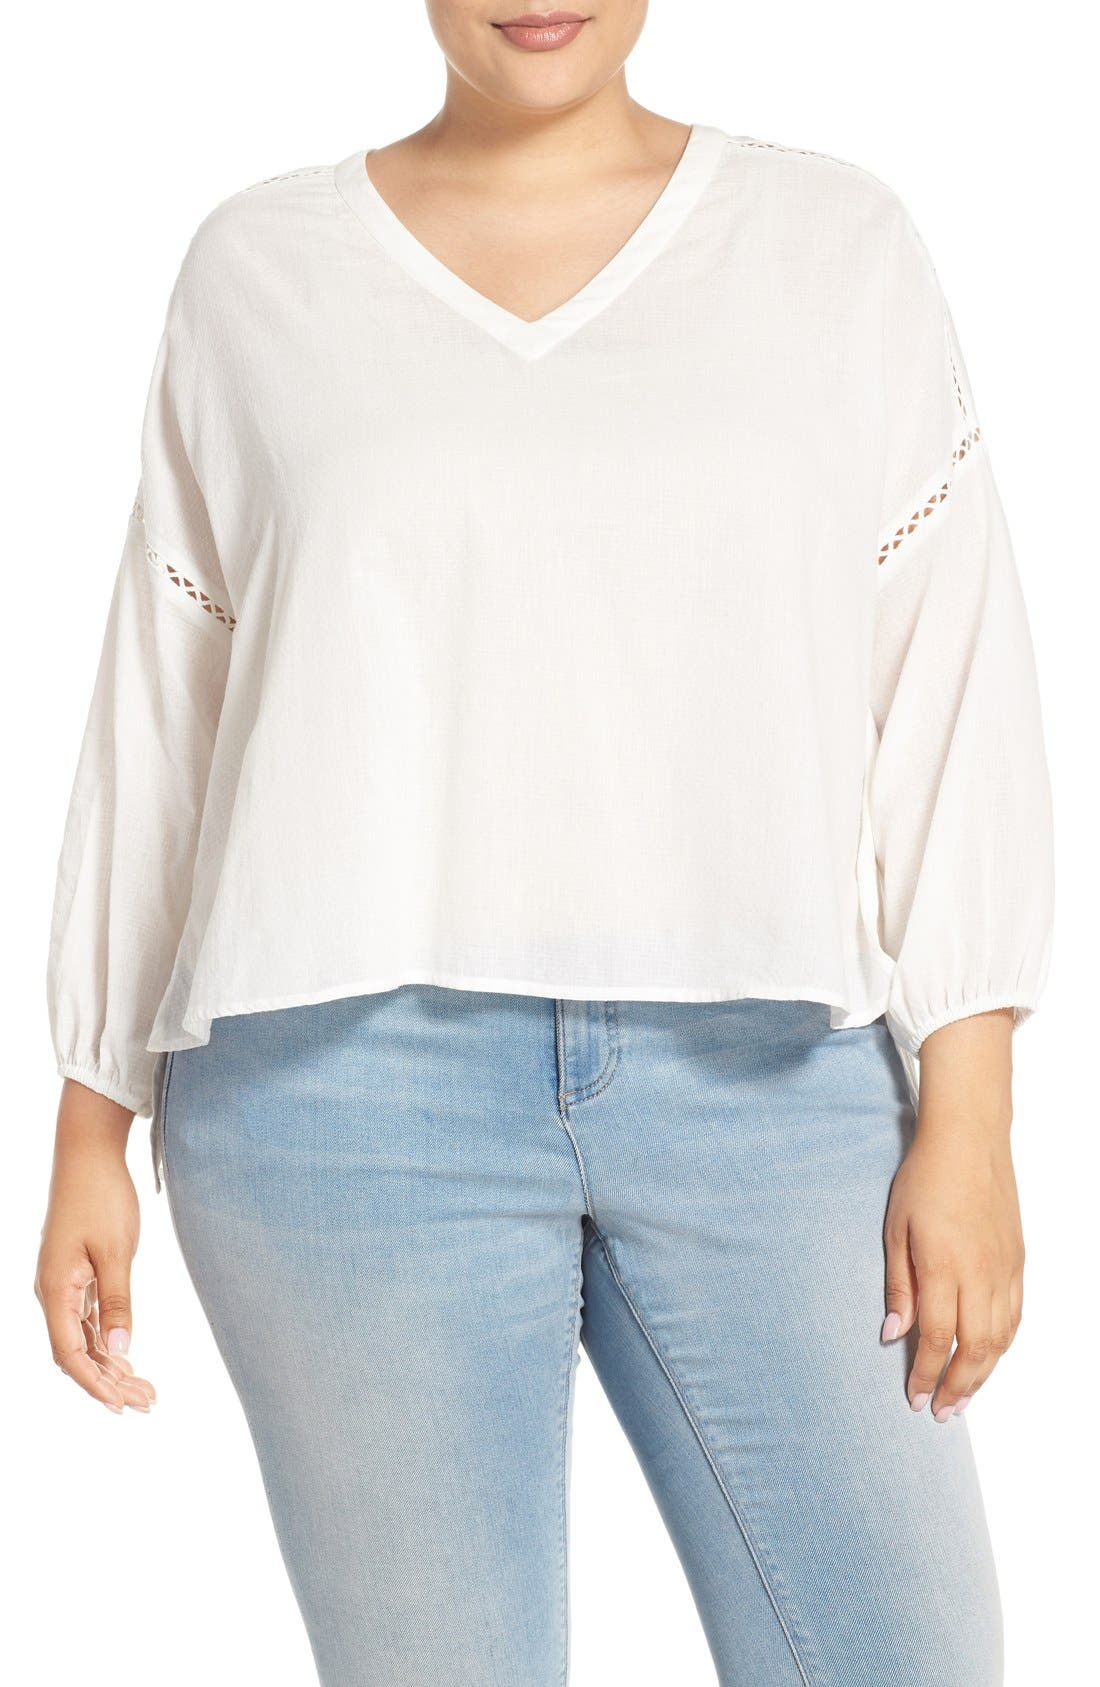 MELISSA MCCARTHY SEVEN7 Embroidered Inset Crop Blouse